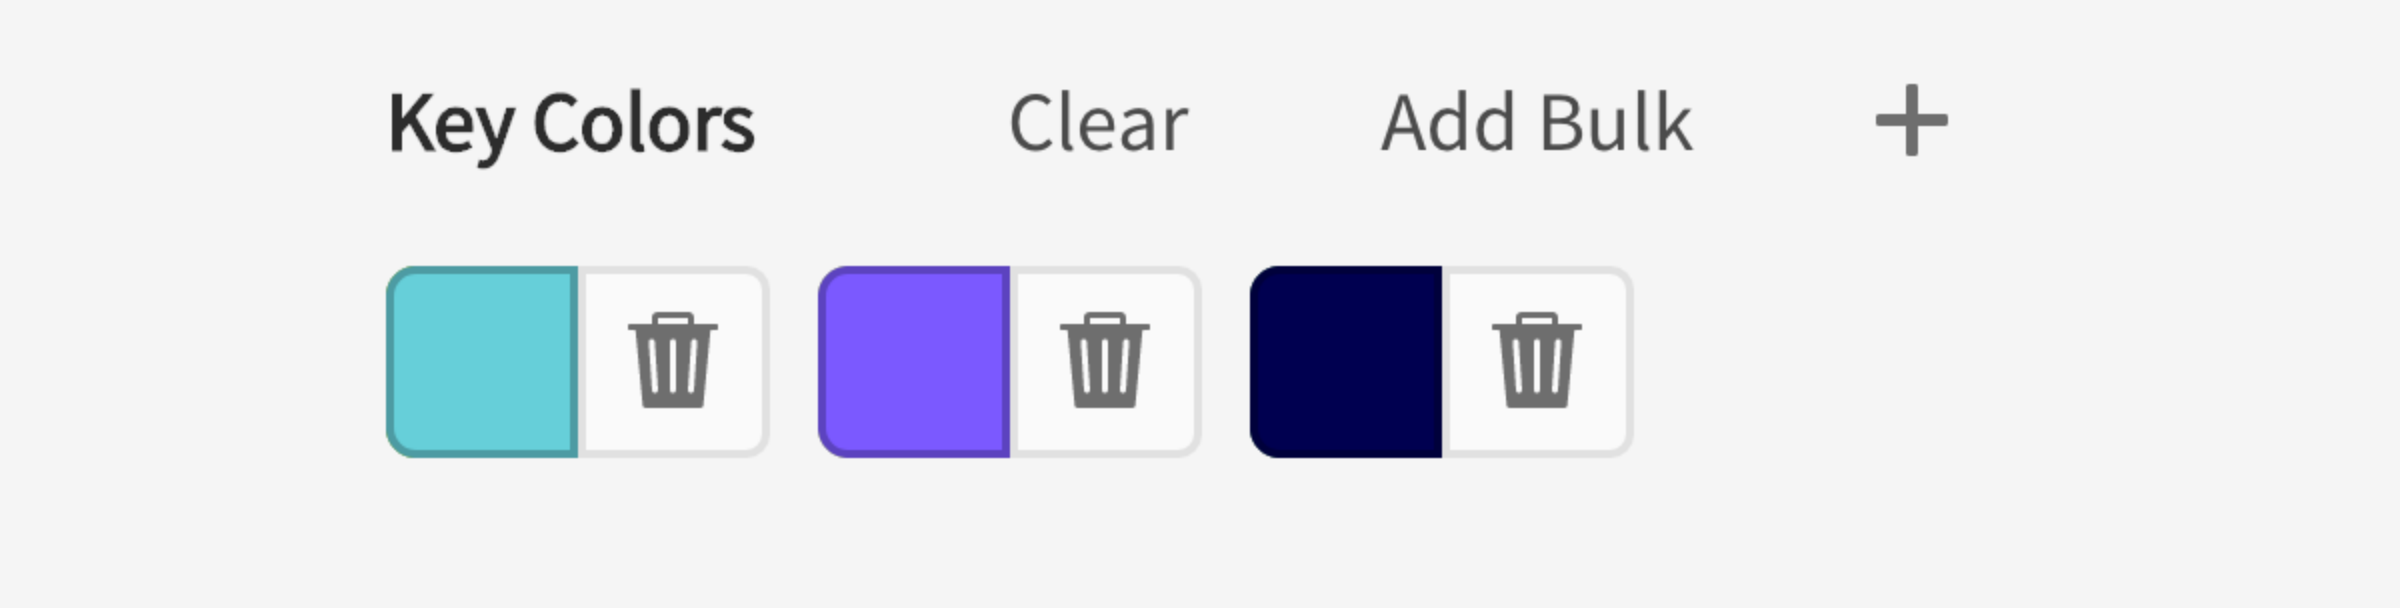 Input for key colors. Options clear, add bulk, add. Delete buttons next to key colors teal, purple, deep purple